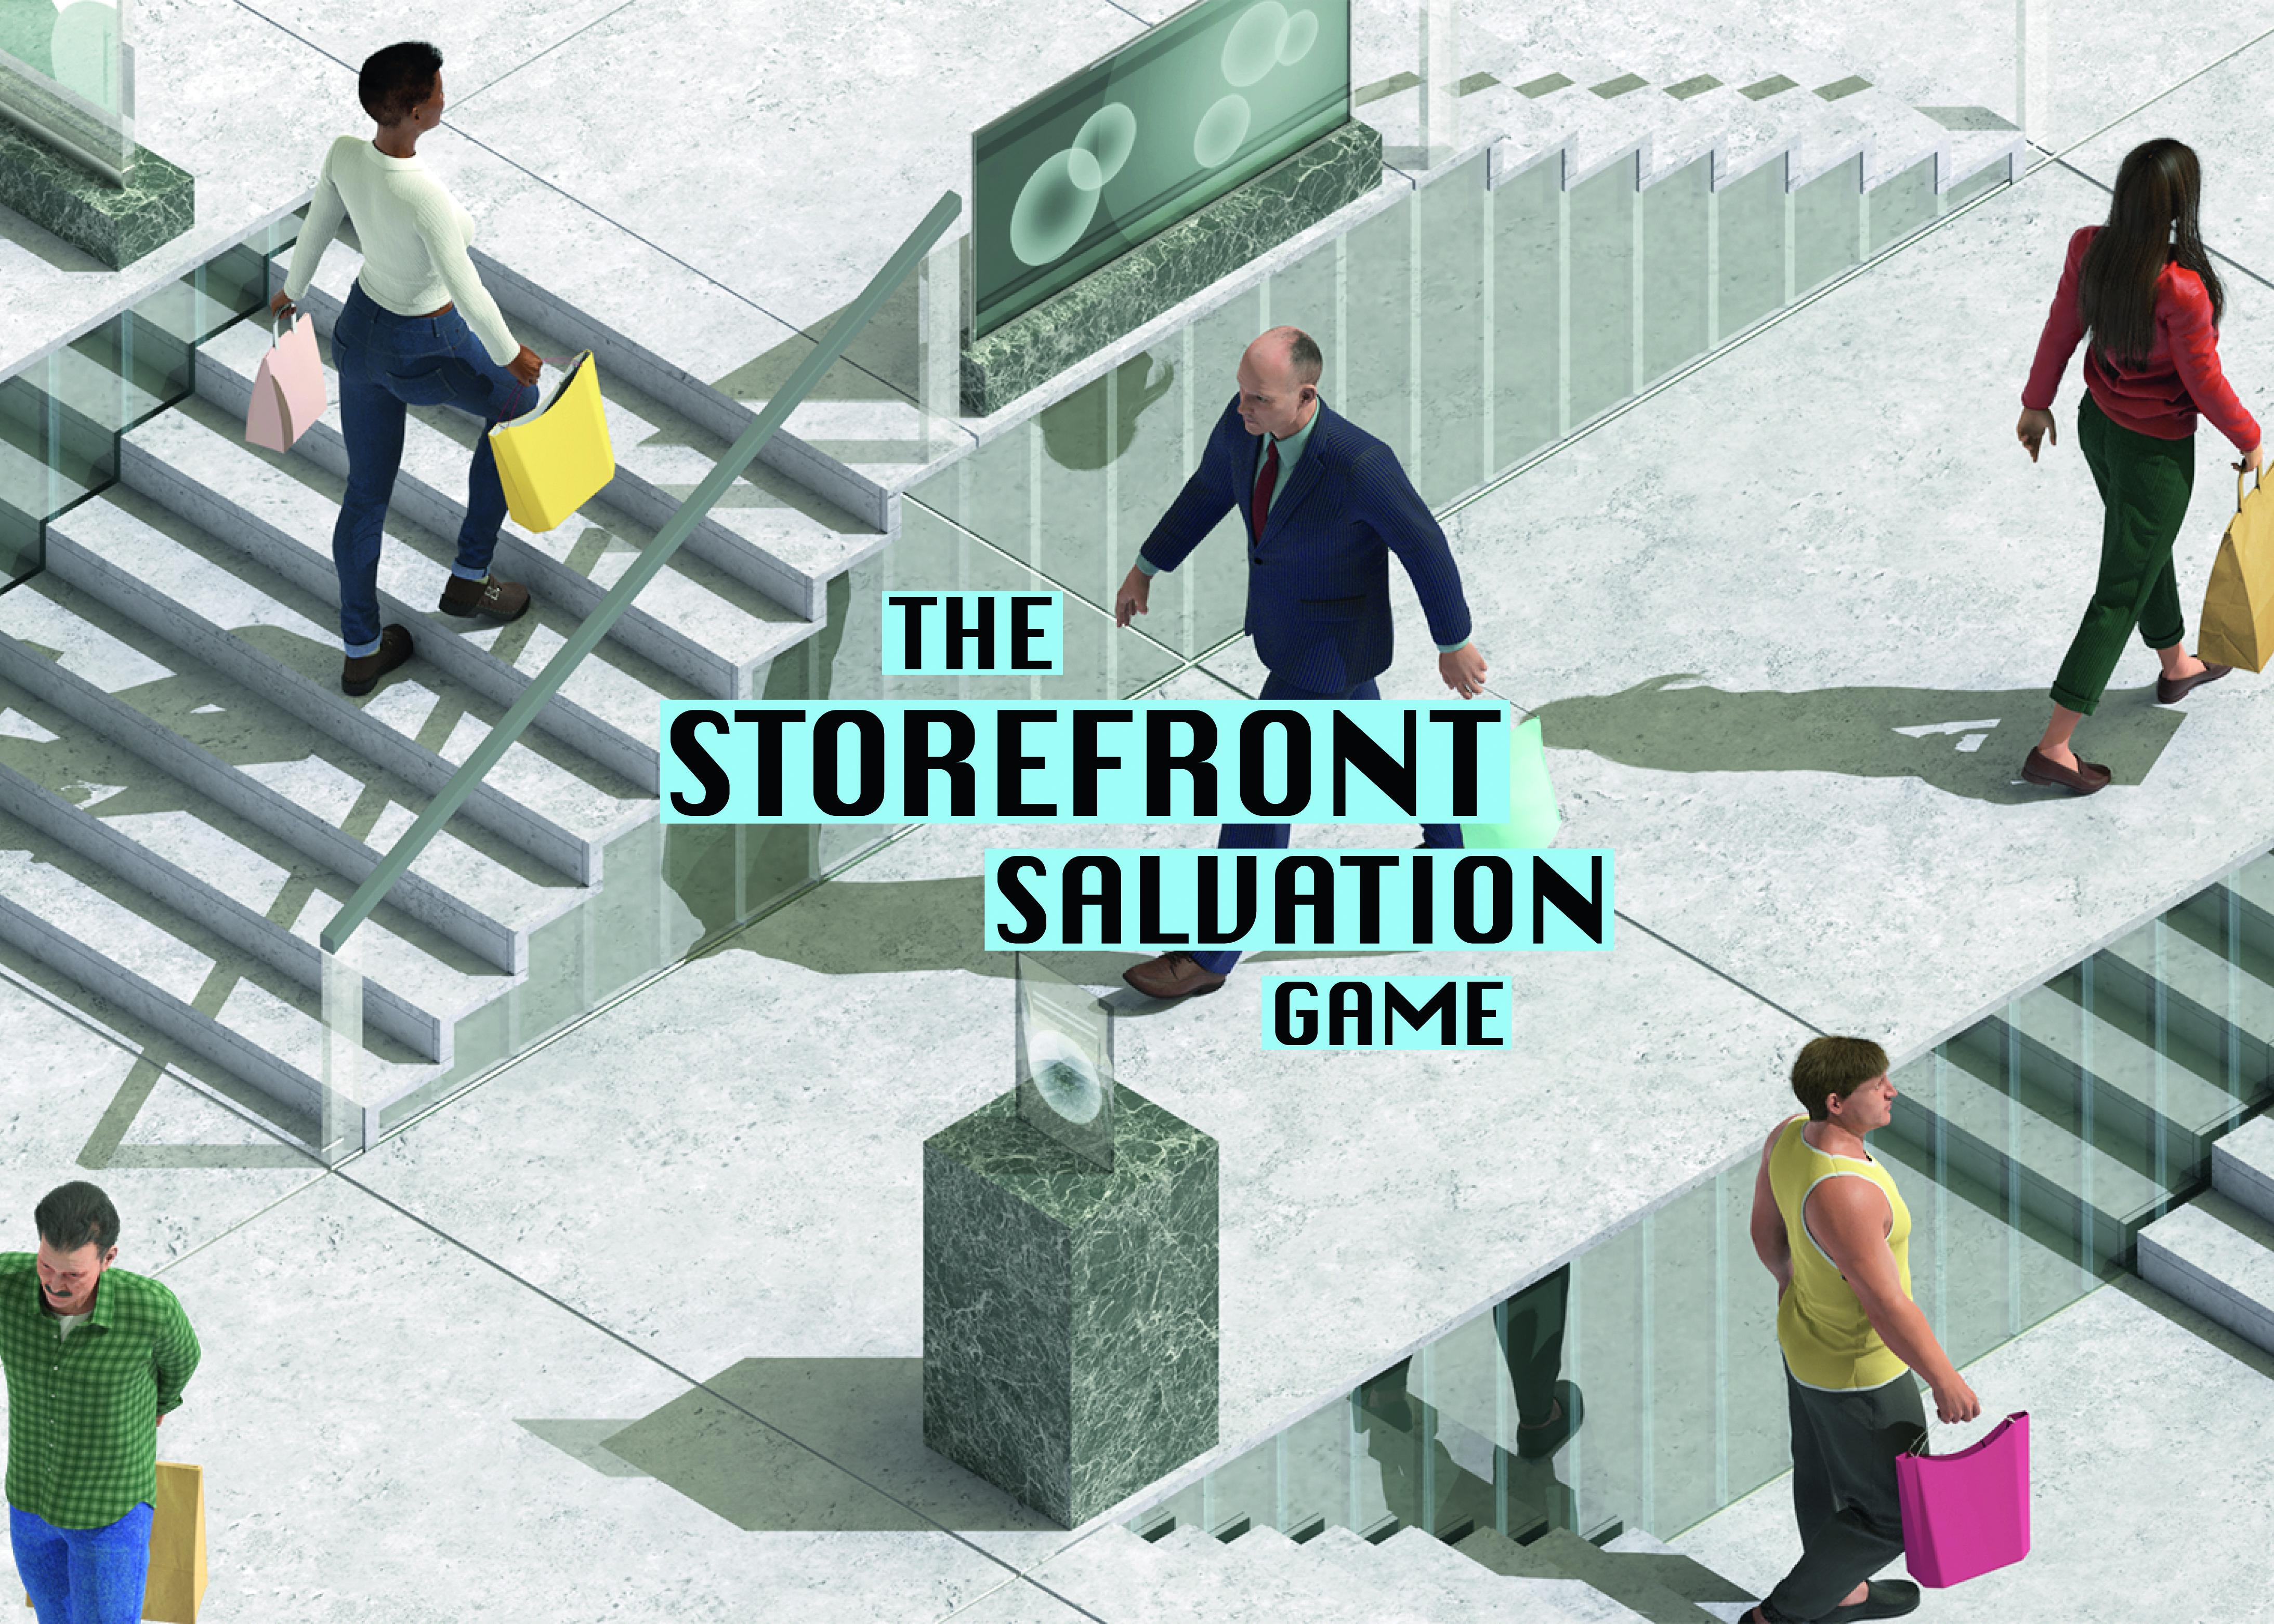 The Storefront Salvation Game